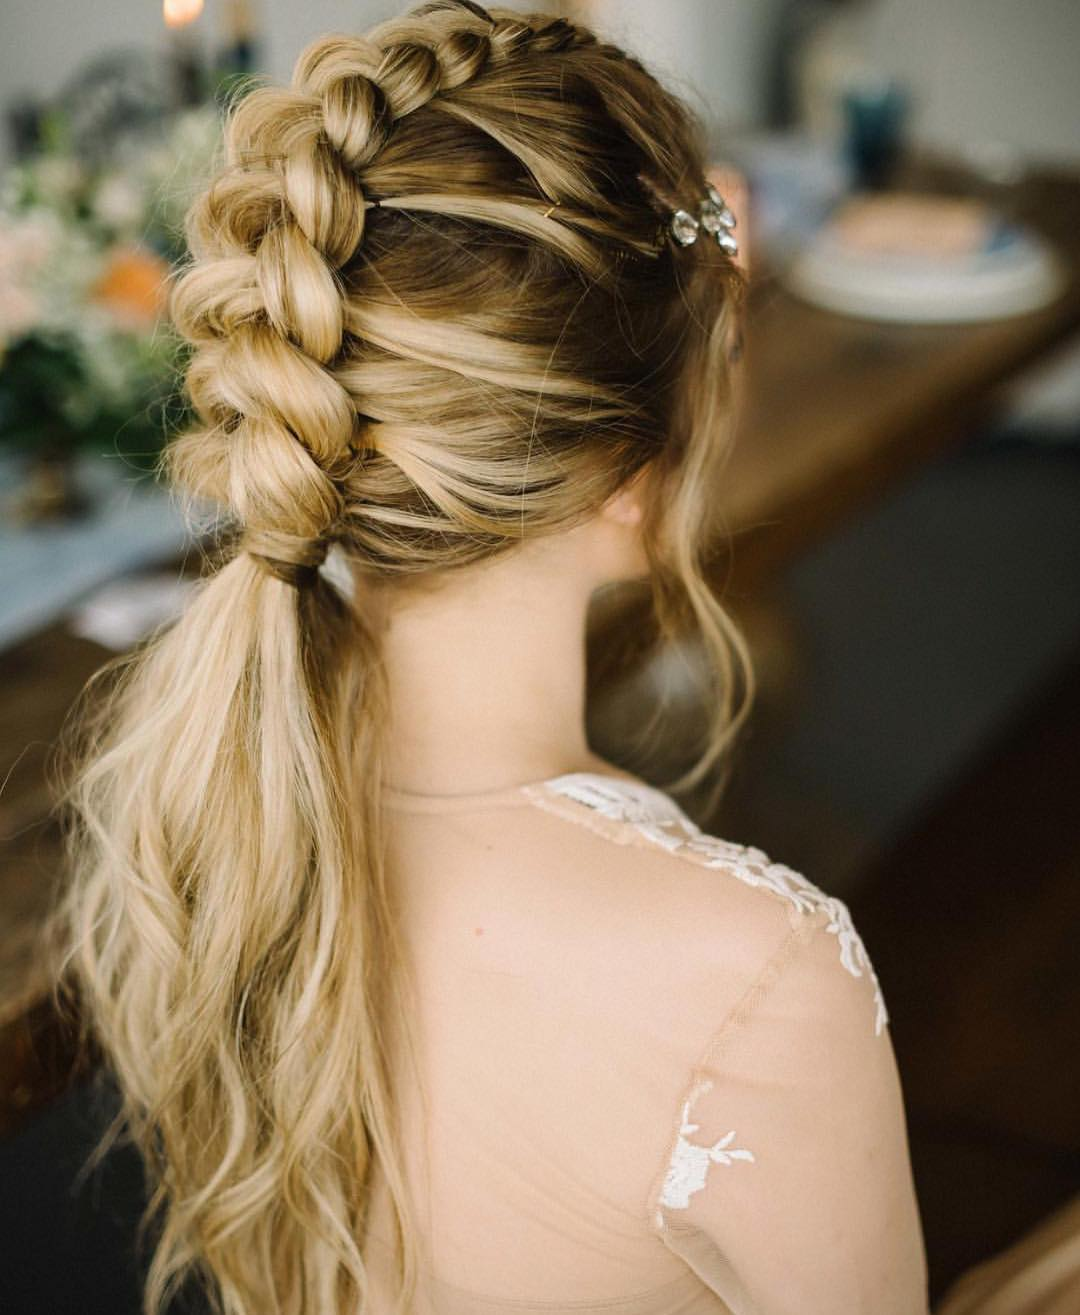 Hairstyle Ideas For Wedding: 10 Braided Hairstyles For Long Hair